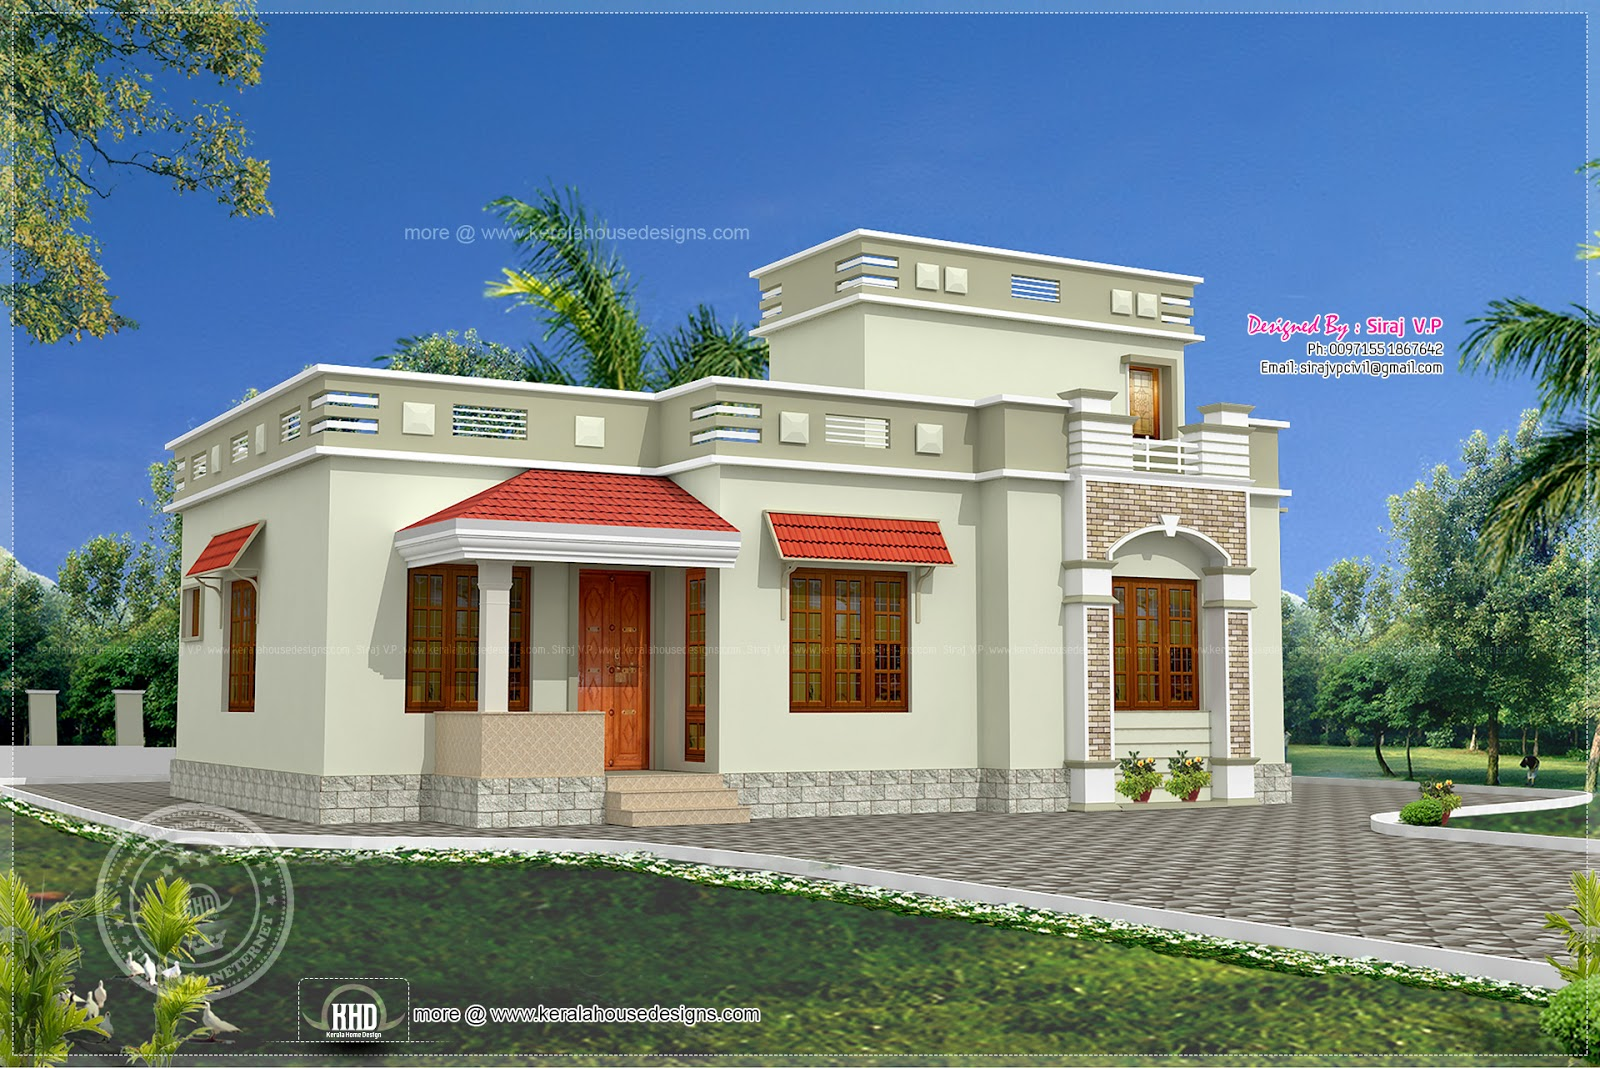 Low budget kerala style home in 1075 house design plans Home design and budget